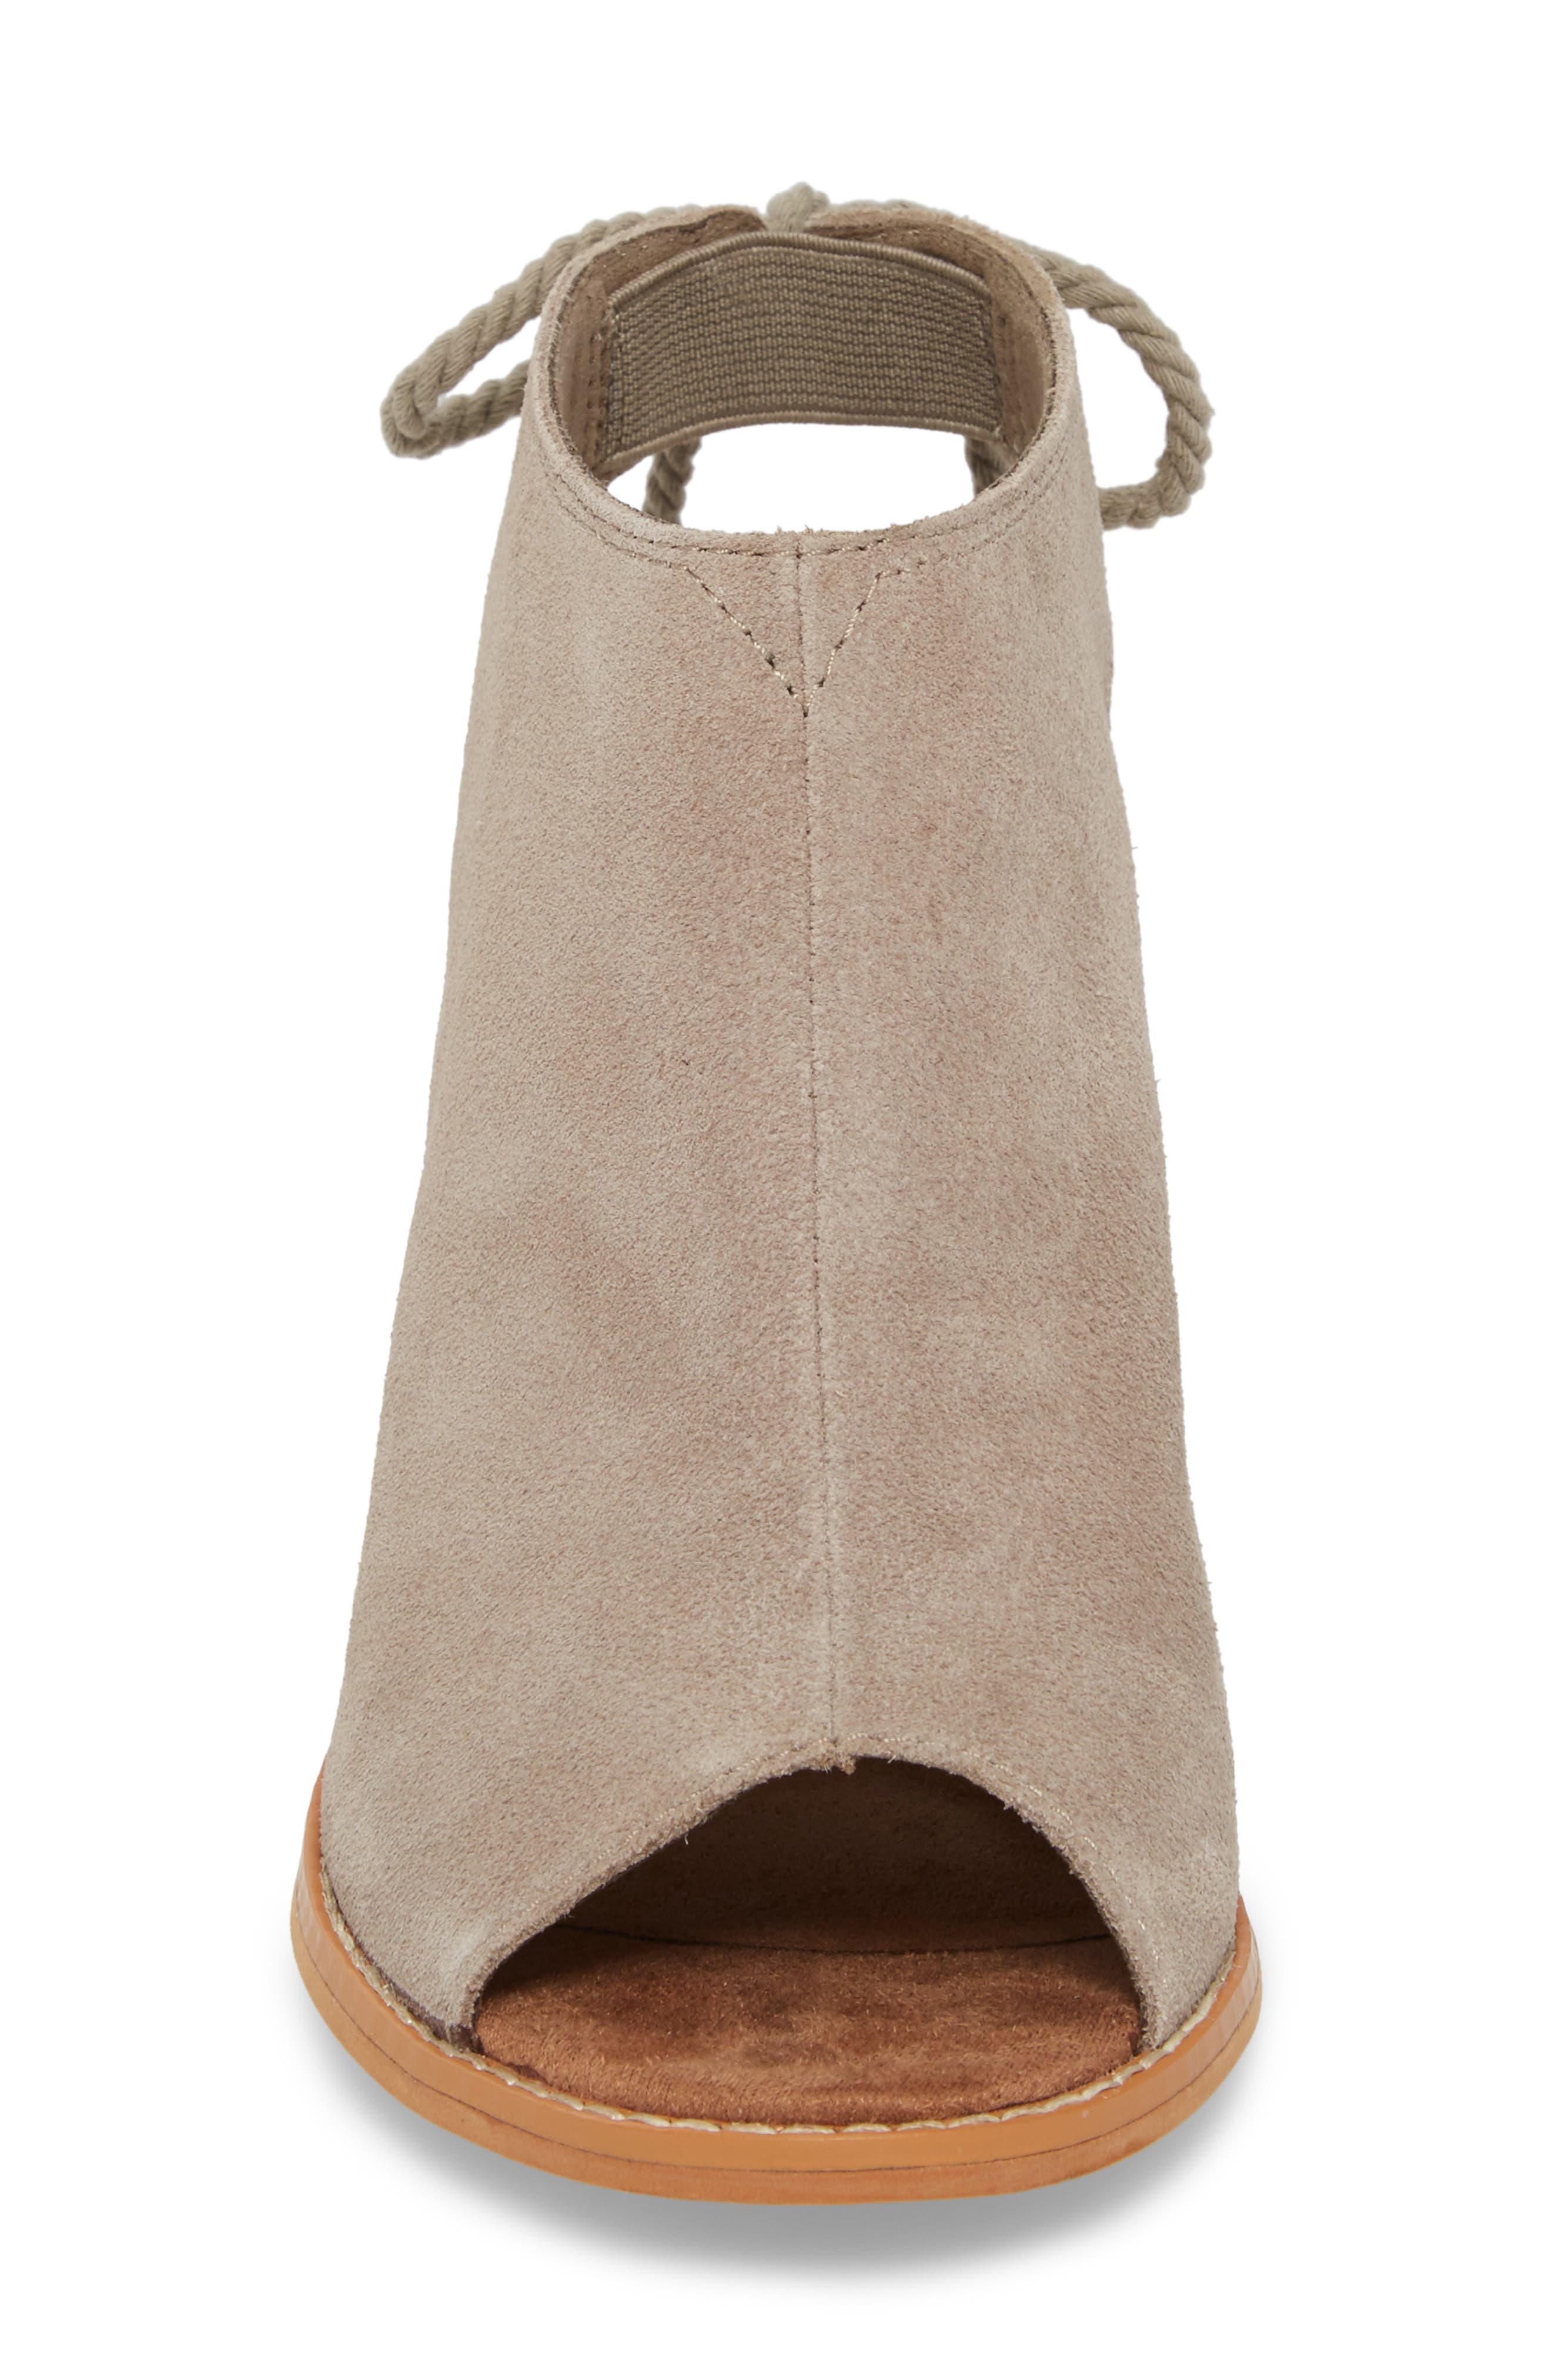 Elba Peep-Toe Bootie,                             Alternate thumbnail 4, color,                             Desert Taupe Suede